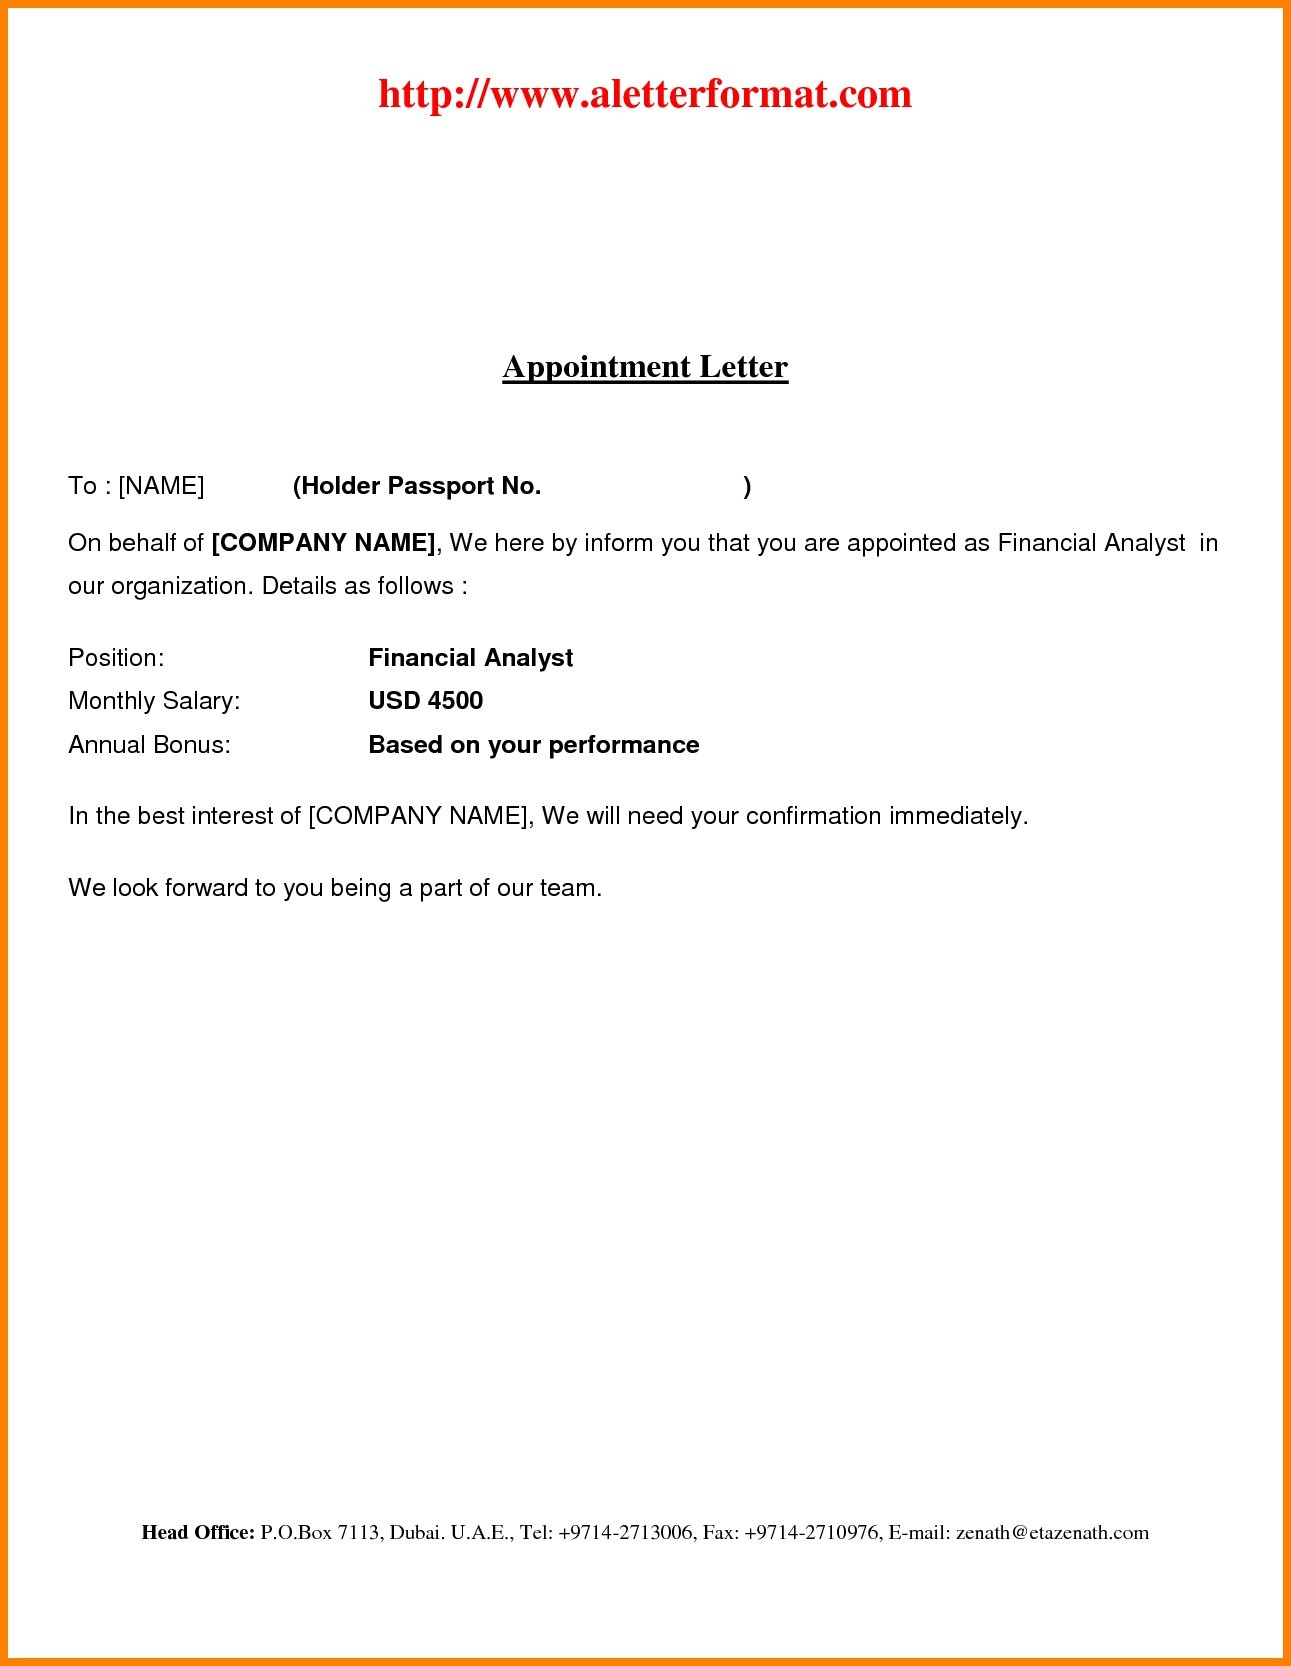 Employment Confirmation Letter Template Doc - Offer Letter format In Dubai Acurnamedia